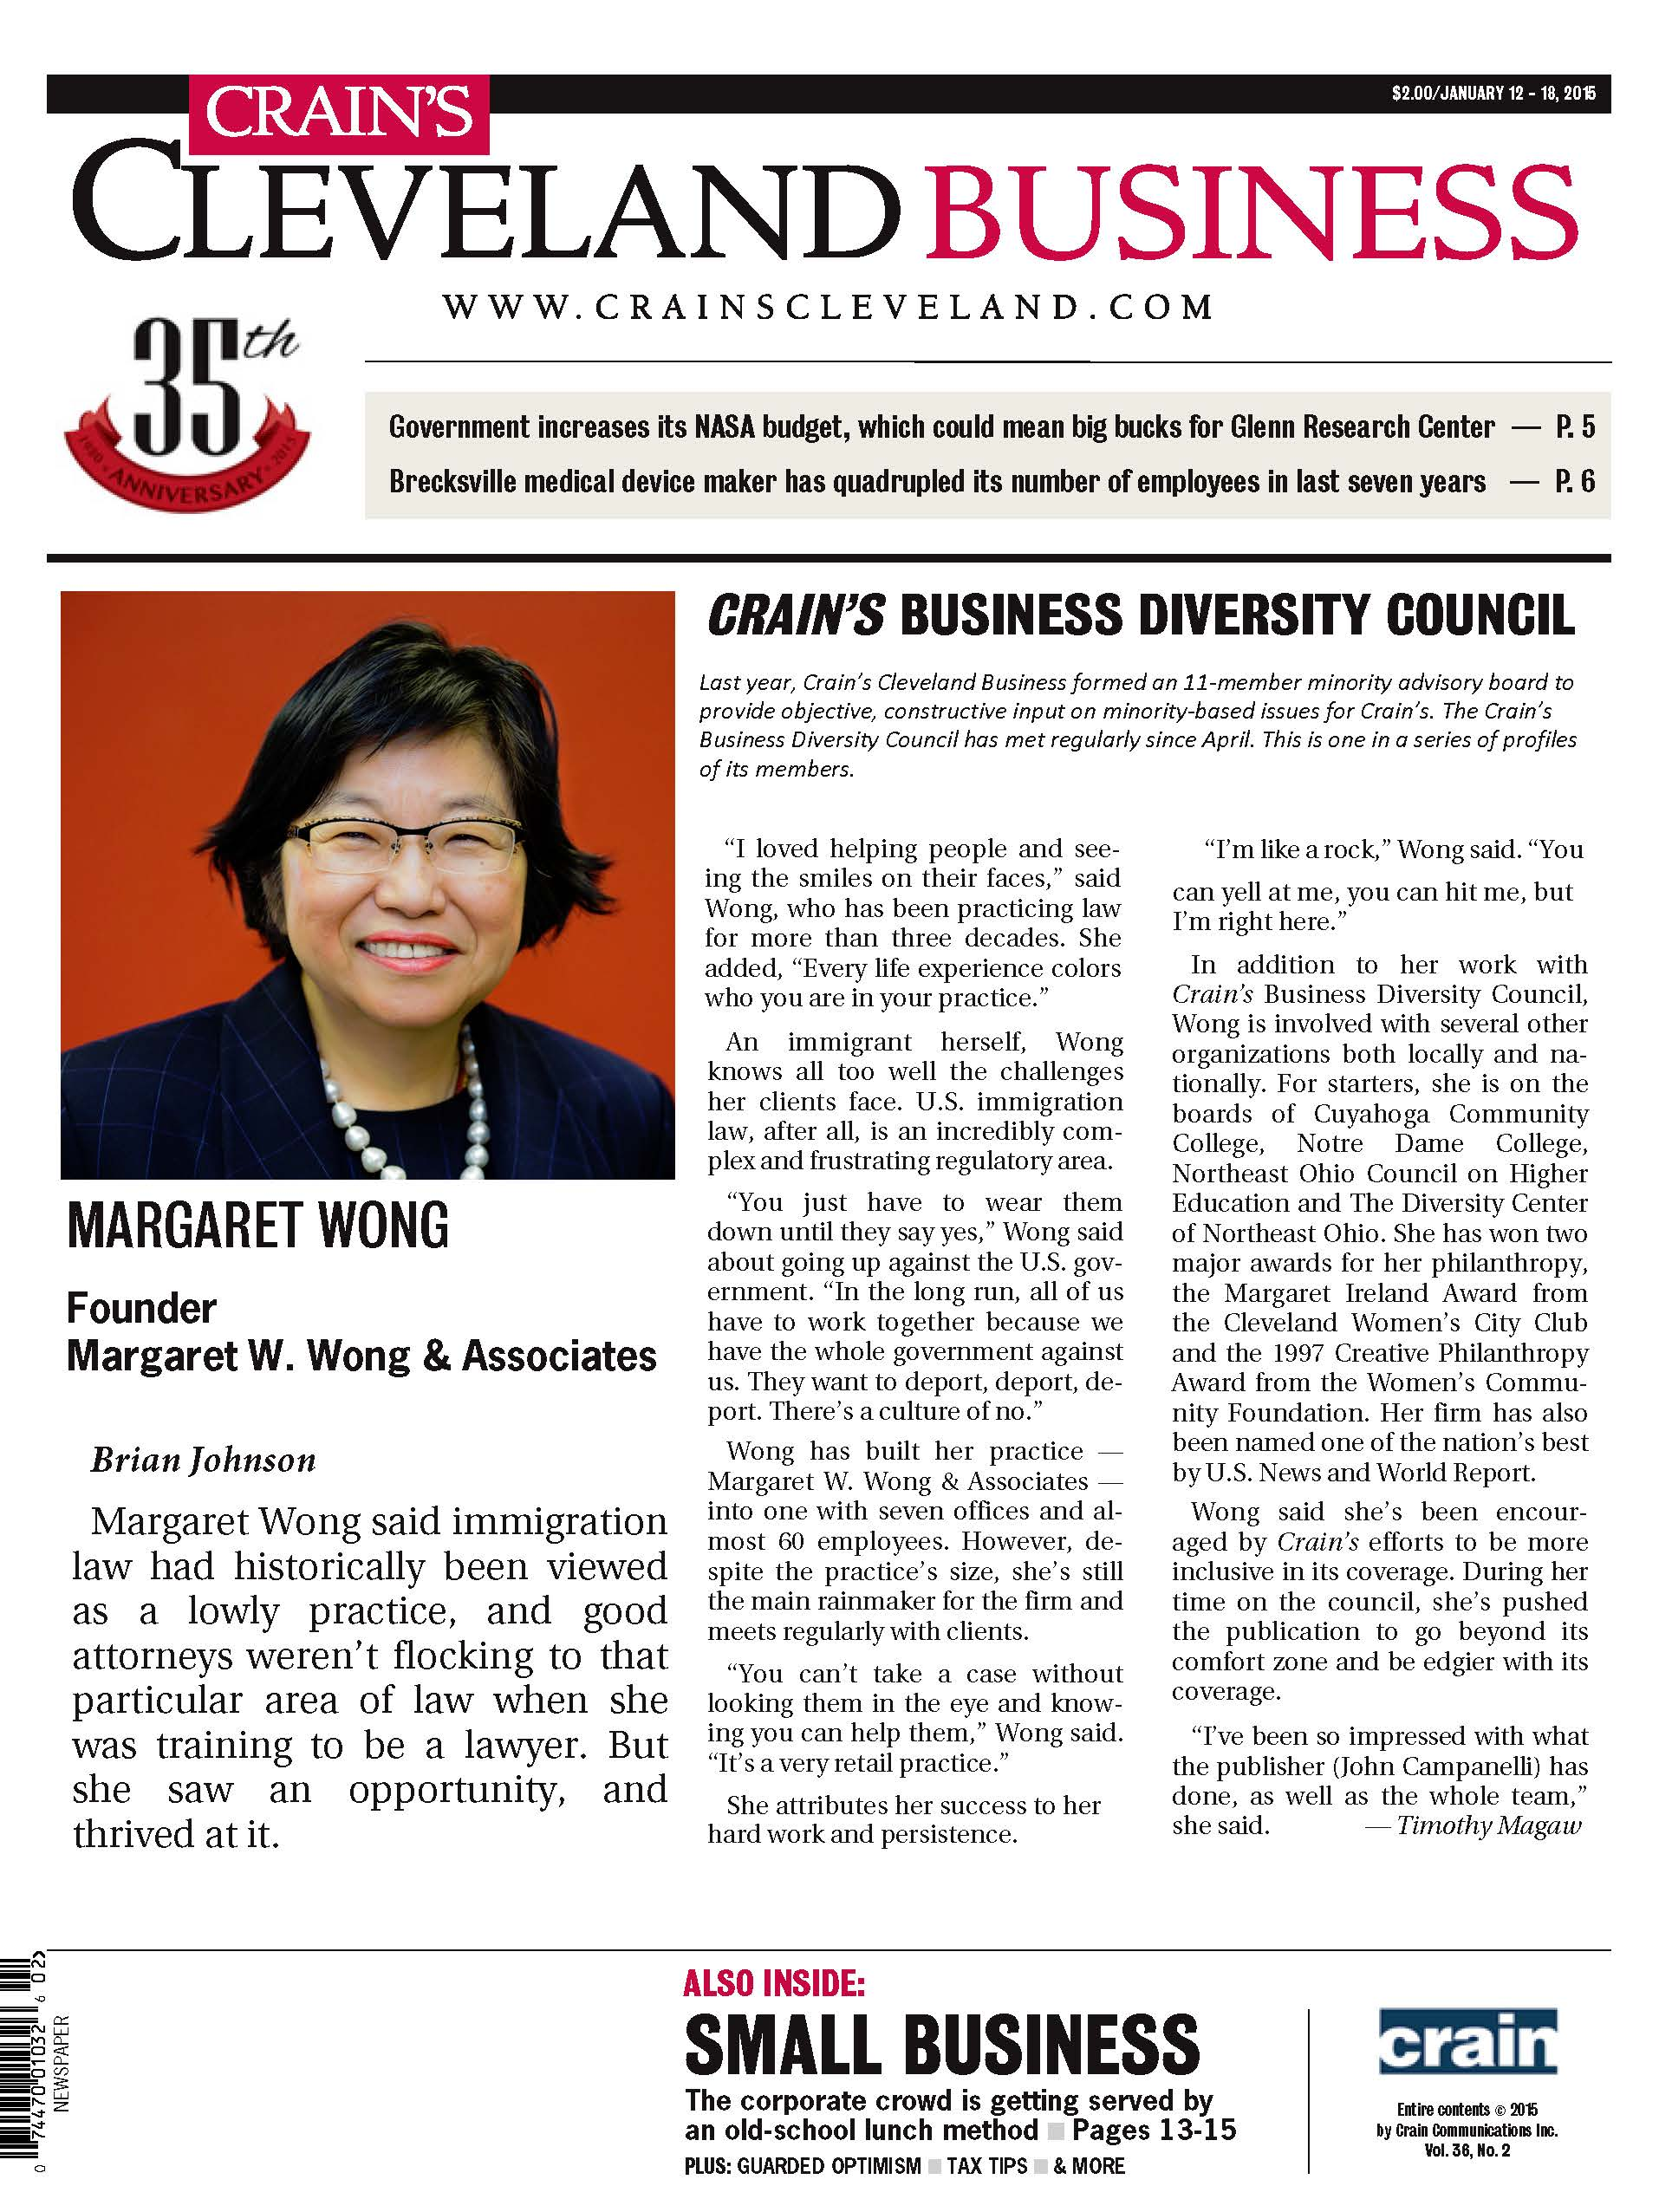 Margaret W Wong immigration attorney helps local newspaper communicate diversity